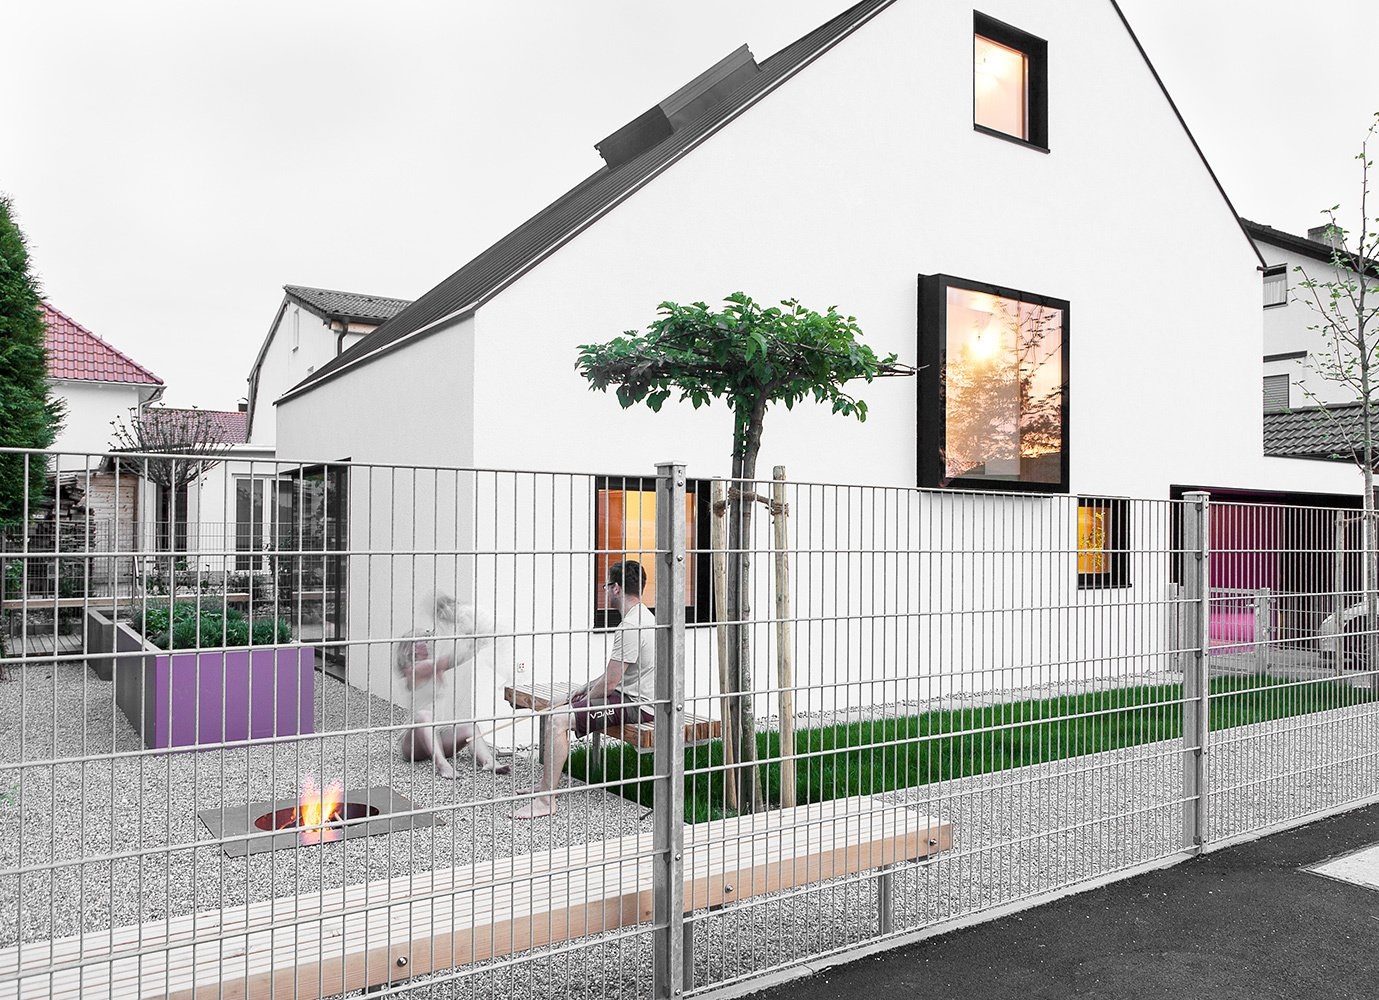 Thanks to its timber frame and simple design, House B was built in less than six months.  A Strikingly Minimal Home Built in Less Than Six Months by Tiffany Jow from House of the Week: Minimalist Dream Home with an Asymmetrical Pitched Roof